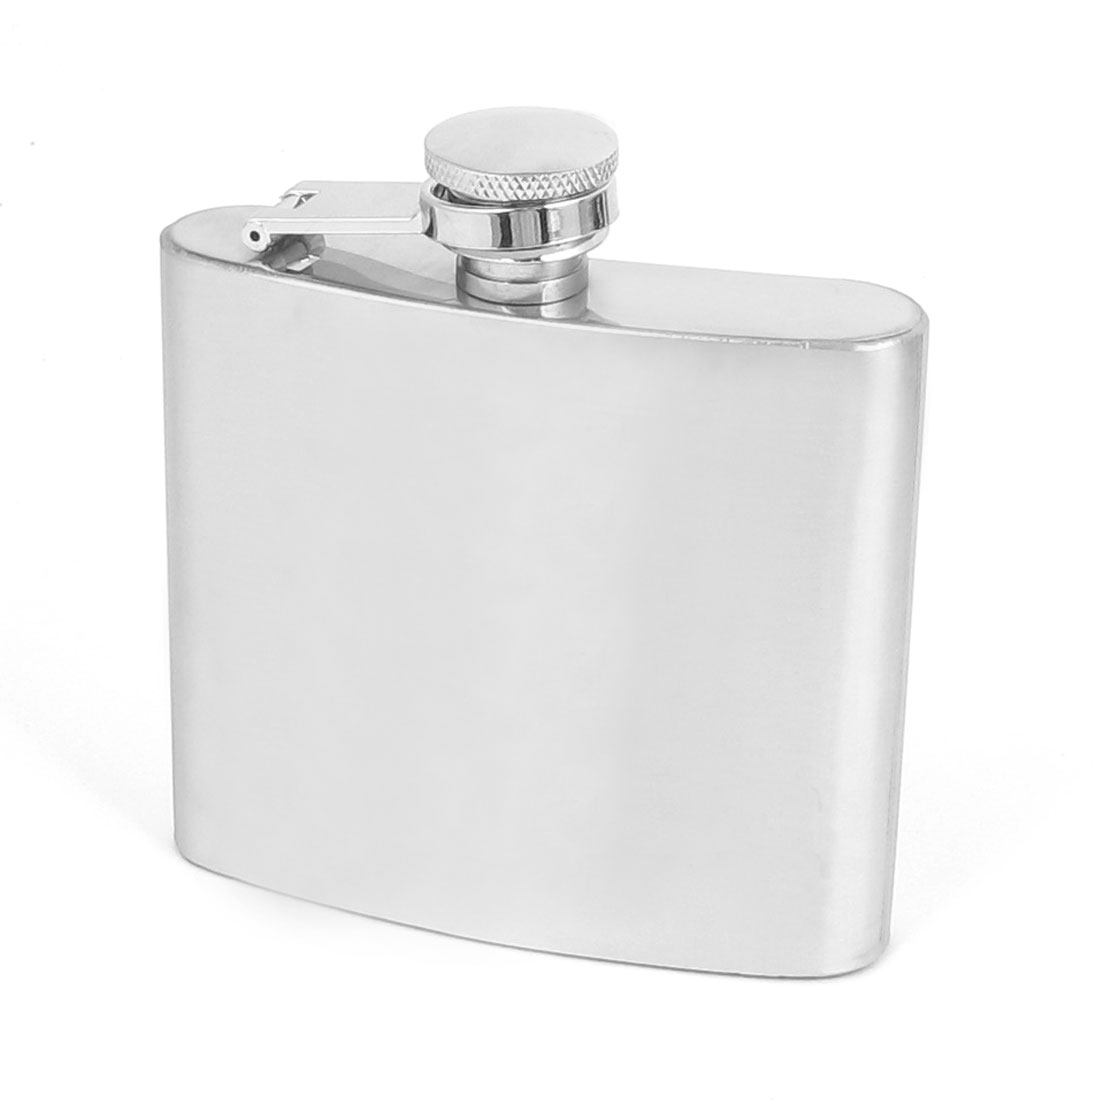 Portable Silver Tone Stainless Steel Whisky Vodka Wine Liquor Container Pocket Hip Flask 150ML 5 Oz Capacity